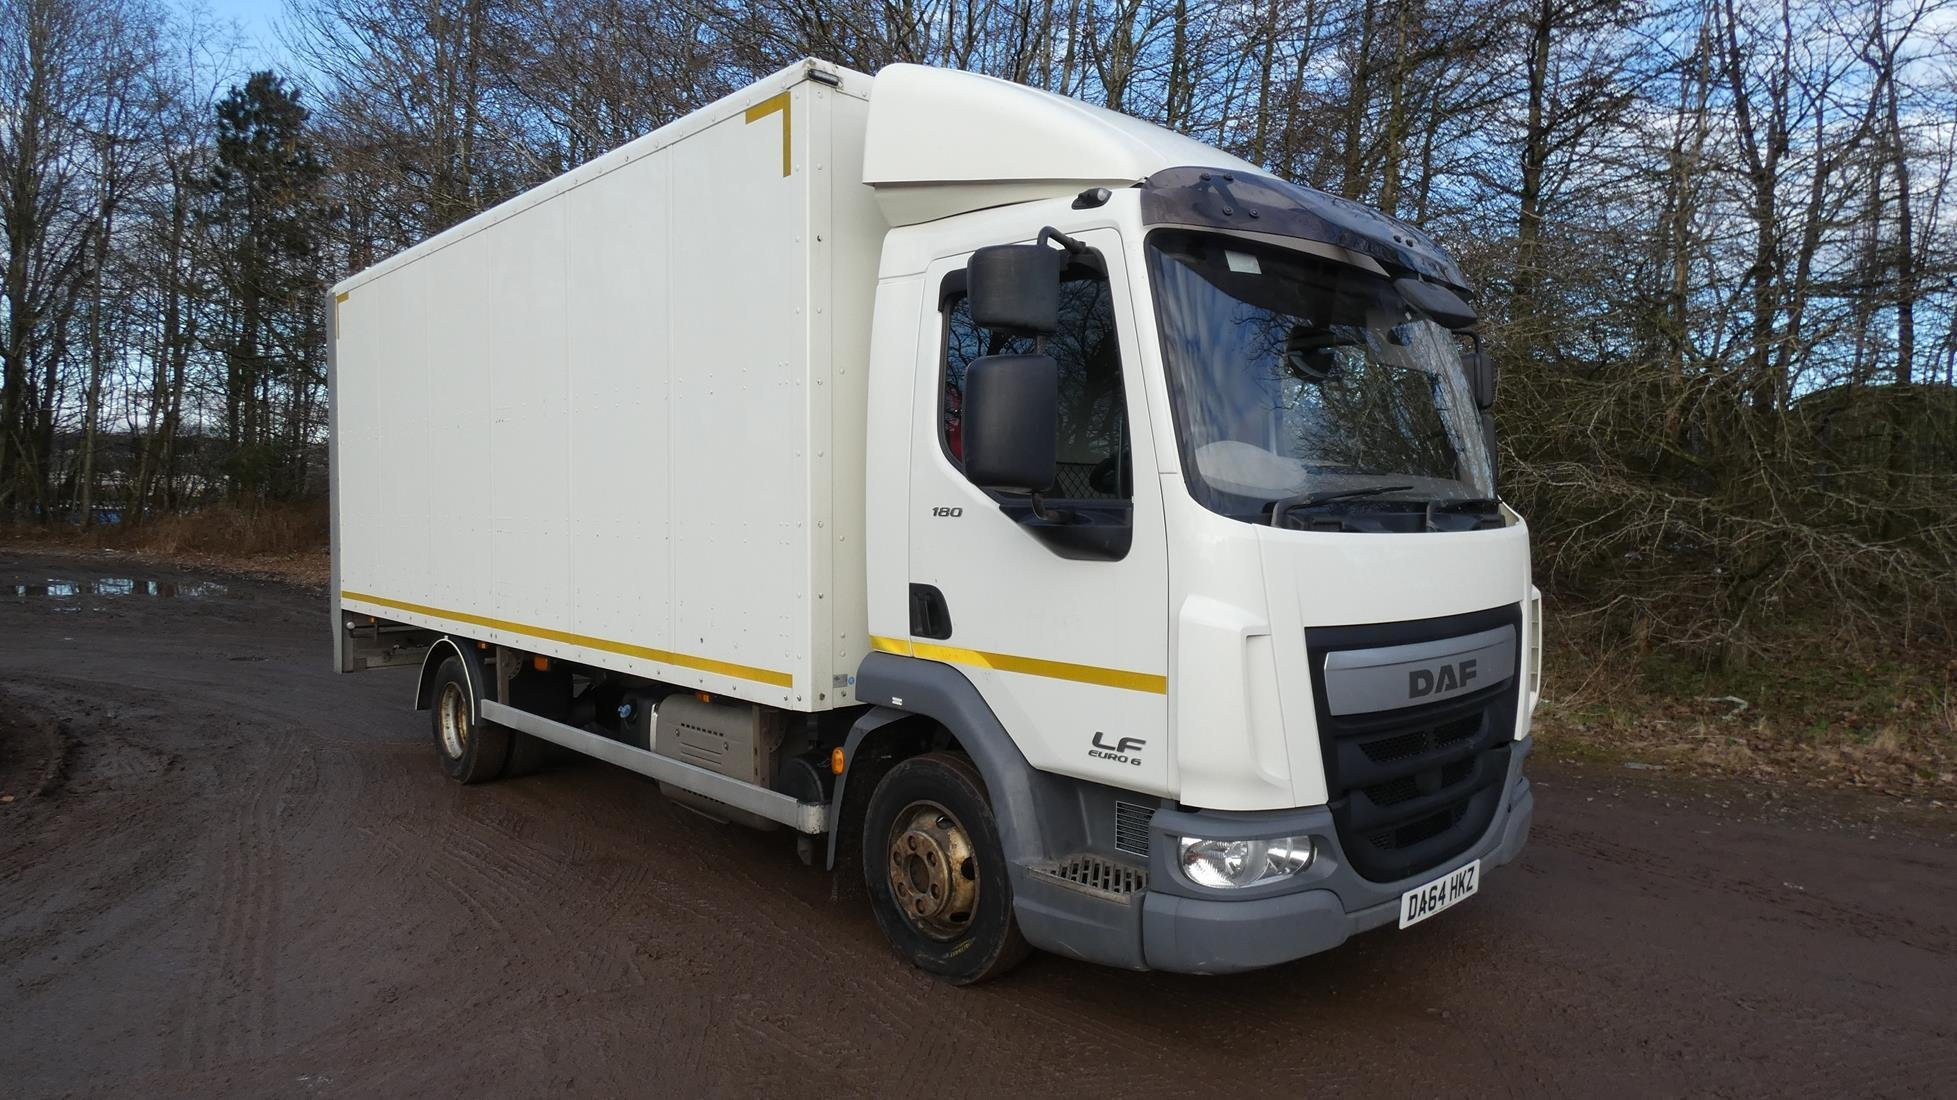 Euro 6 2014 64 DAF LF 180 Box Truck For Sale UK, LEZ and ULEZ Compliant, MOT 2021, Ready to go!!!!